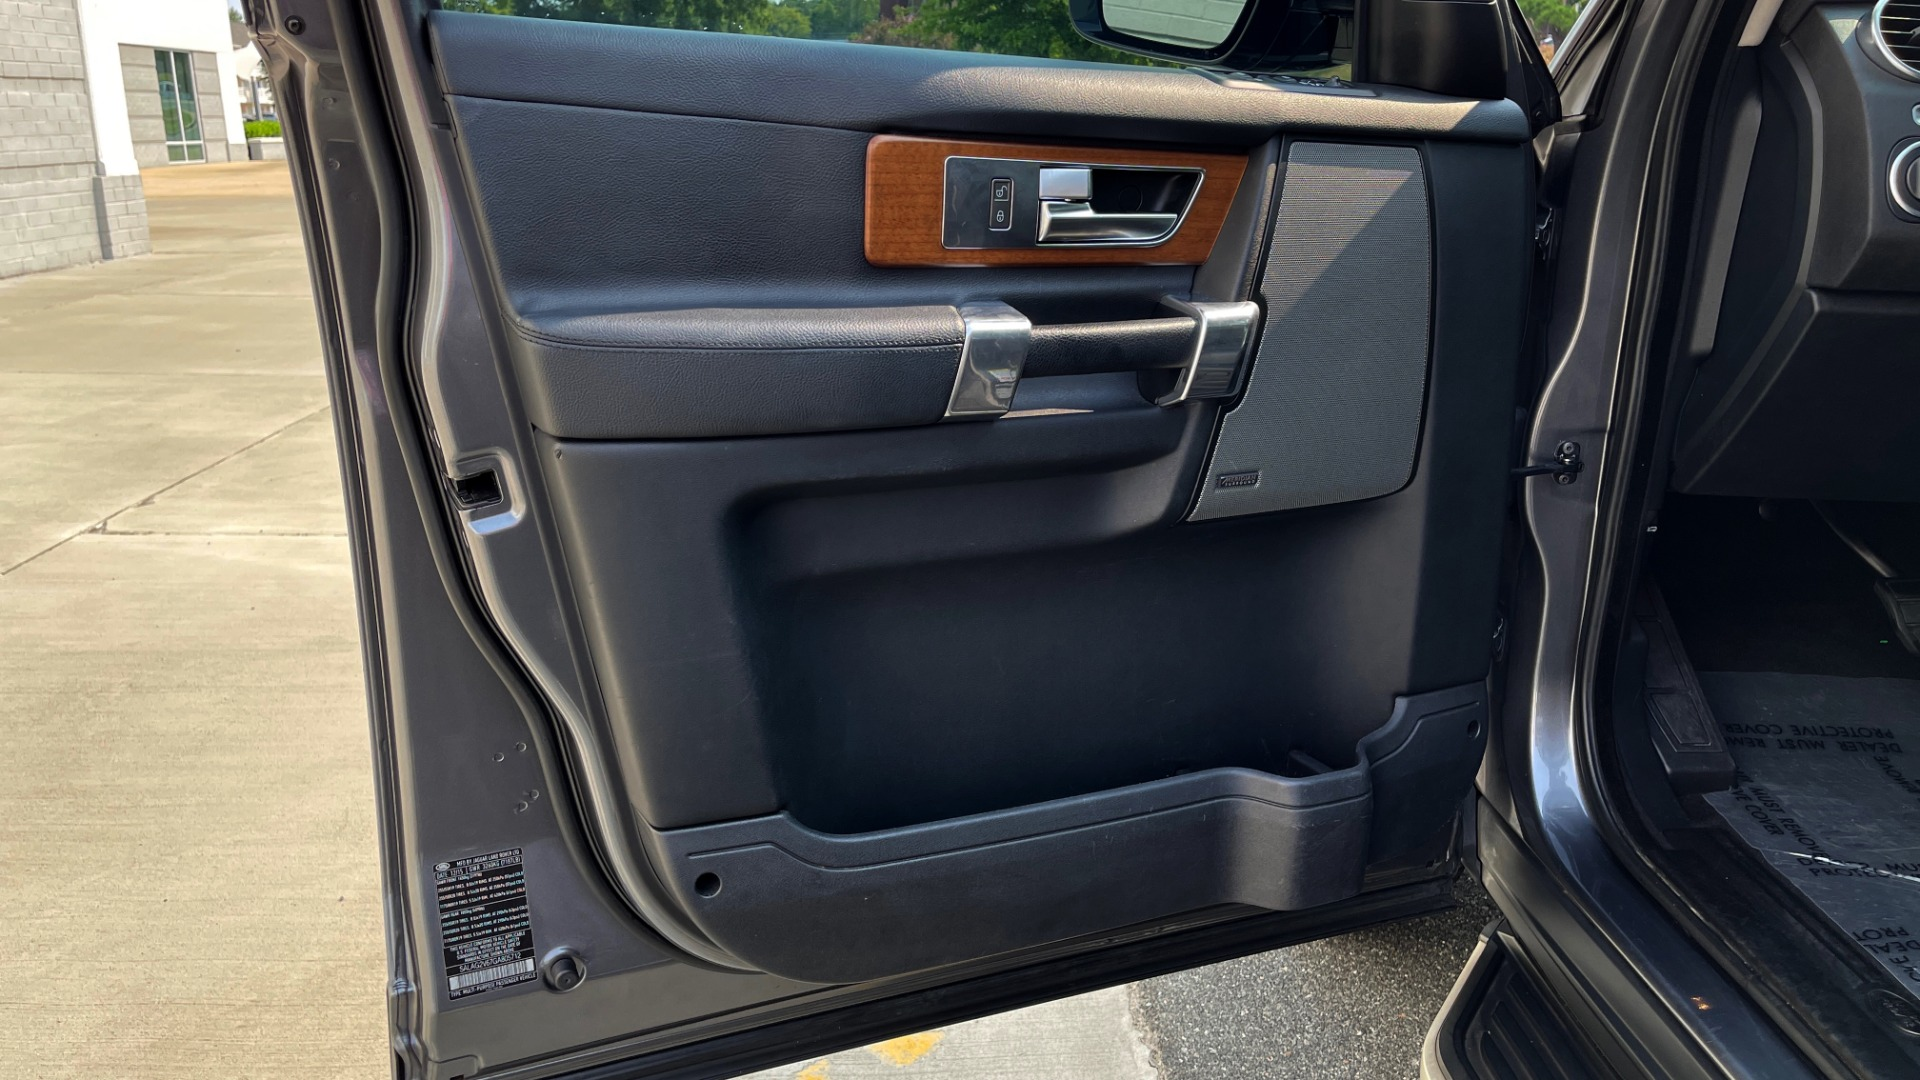 Used 2016 Land Rover LR4 HSE / NAV / SUNROOF / 3-ROW / MERIDIAN SOUND SYS / REARVIEW for sale $30,995 at Formula Imports in Charlotte NC 28227 24